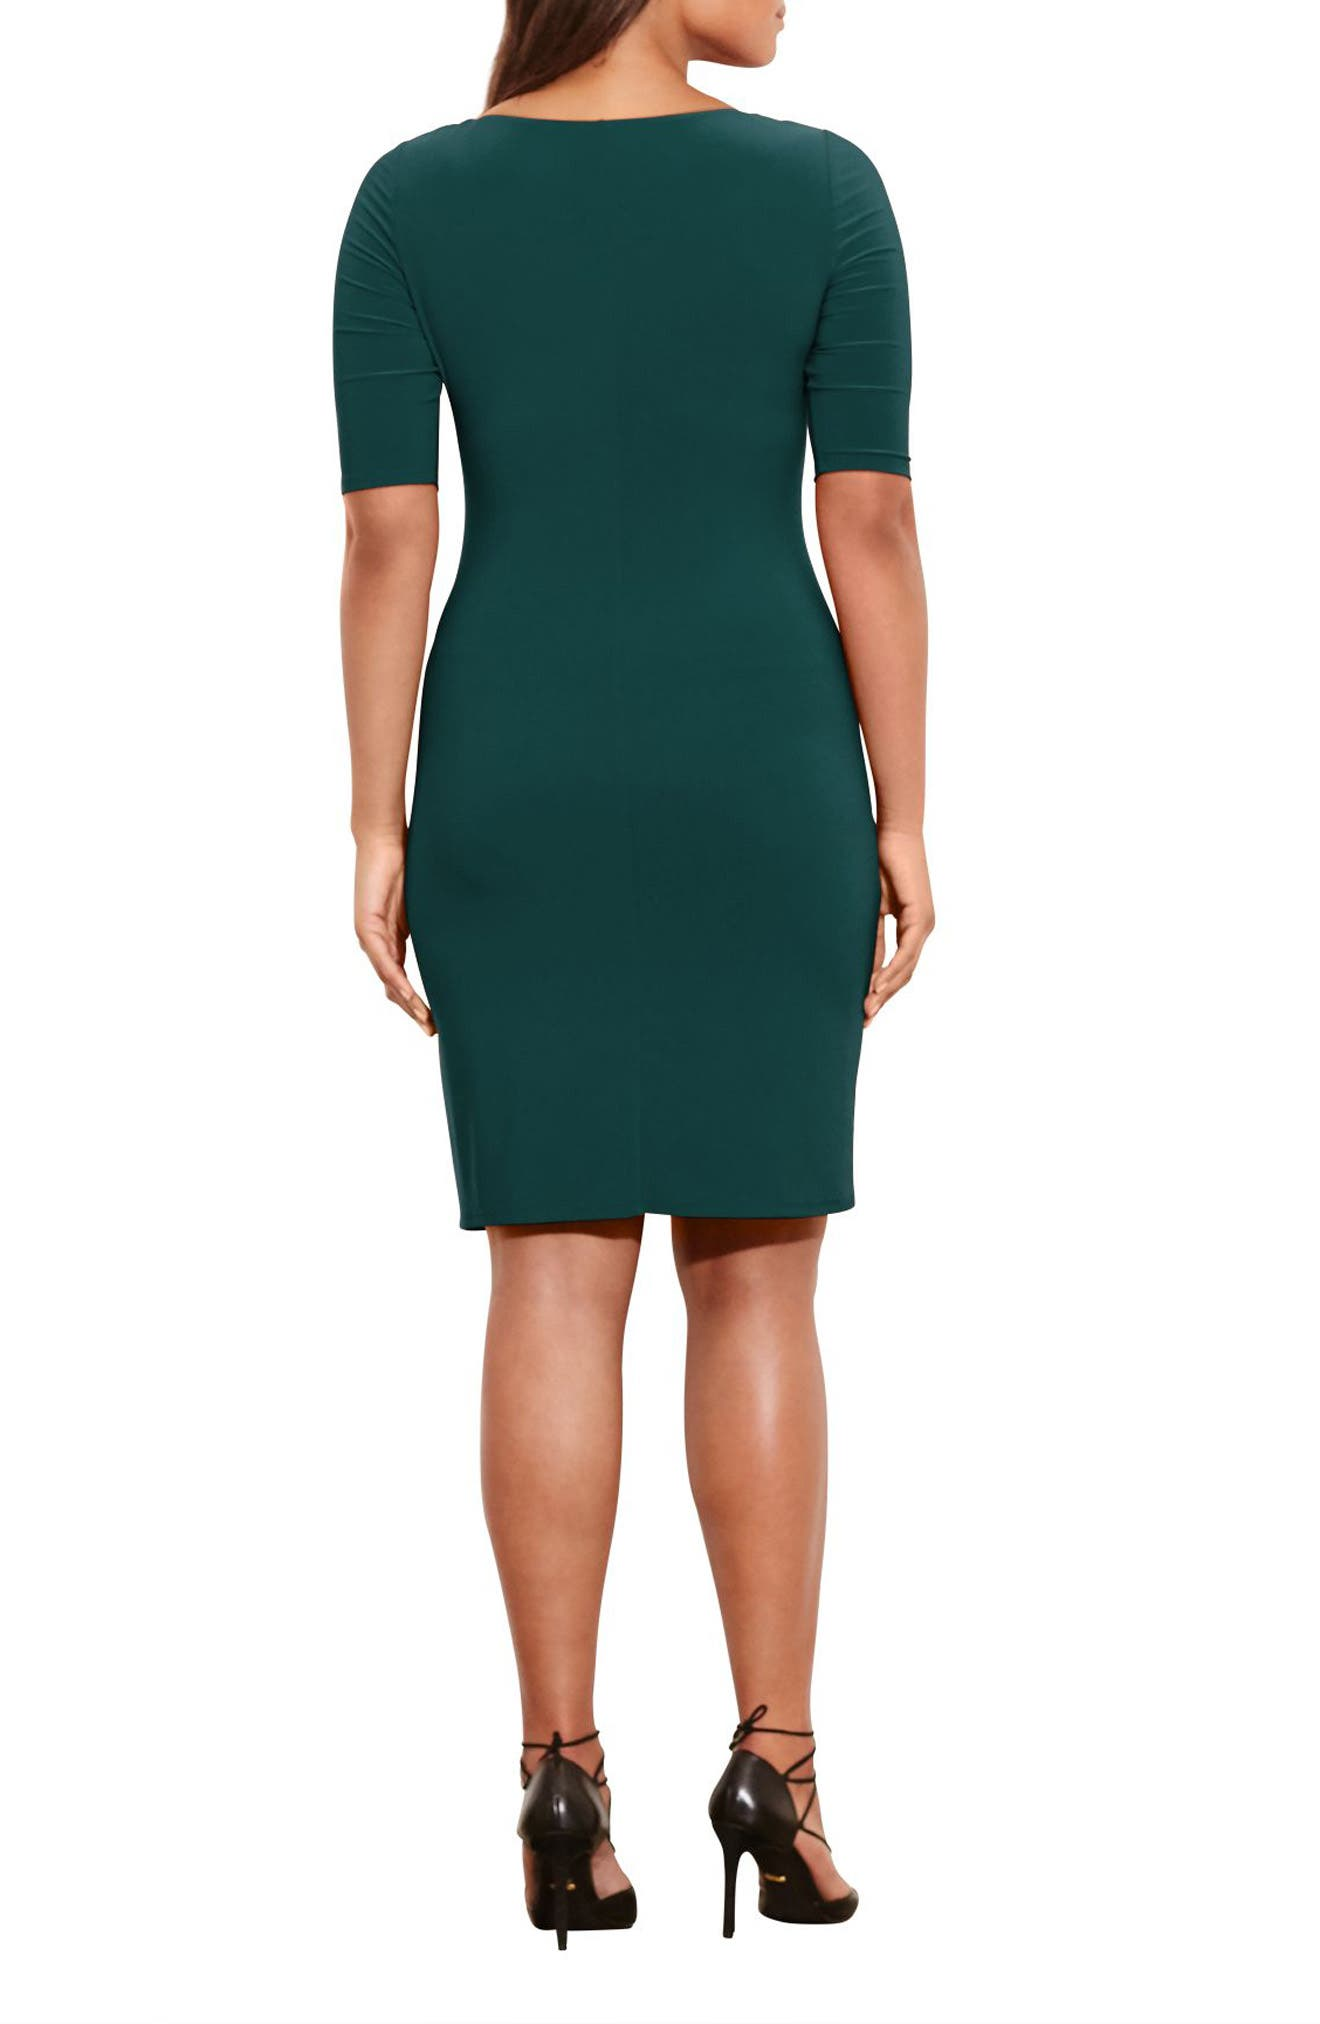 Carleton Cowl Neck Jersey Dress,                             Alternate thumbnail 2, color,                             300